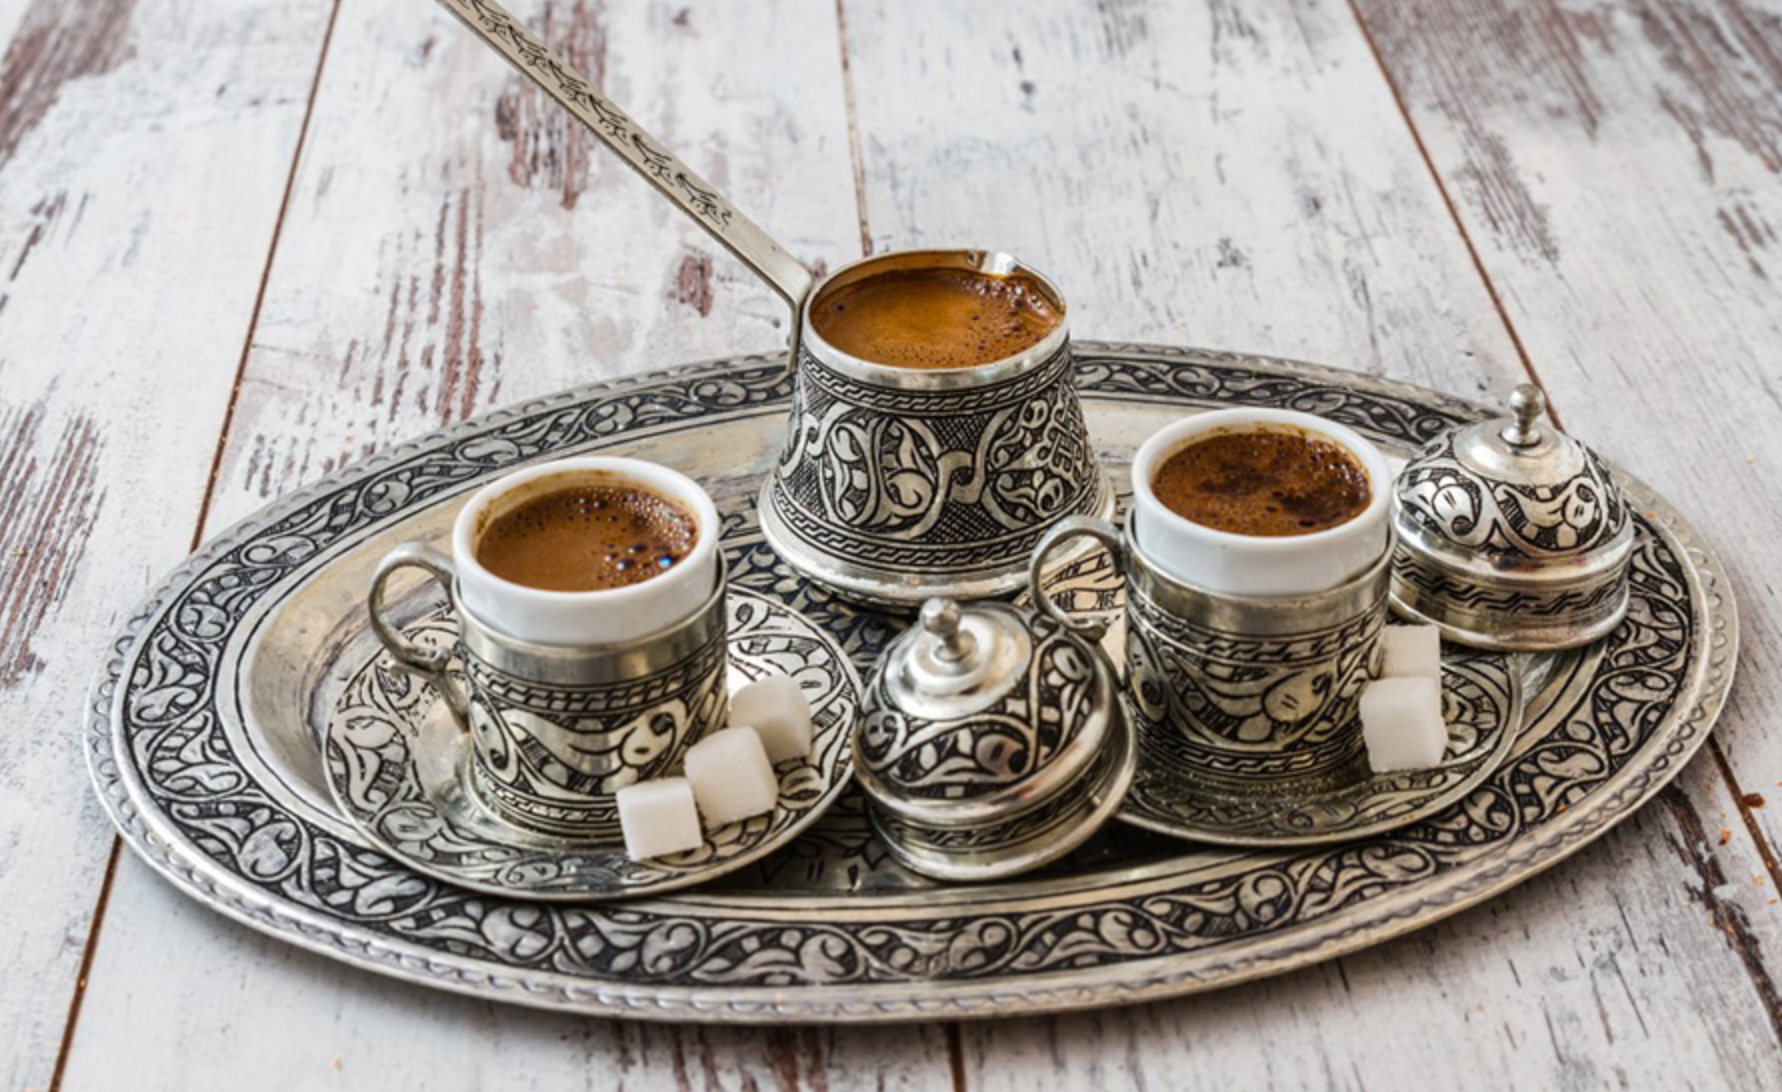 You have probably tasted this kind of coffee, or at least heard about it.  Turkish coffee is drunk in various parts of the world, but most of all, as the name suggests, is loved in Turkey, the countries of the Middle East and Eastern Europe.  It is a drink with a rich history, the recipe of which has changed little over the past 400 years.  The method for its preparation is quite simple. It is necessary to boil water with sugar, then add coffee, grated cardamom, and boil again. Before pouring coffee, you need to let it brew a little until froth appears, and then serve in small cups.  To enjoy the taste of coffee, you need to drink it slowly.